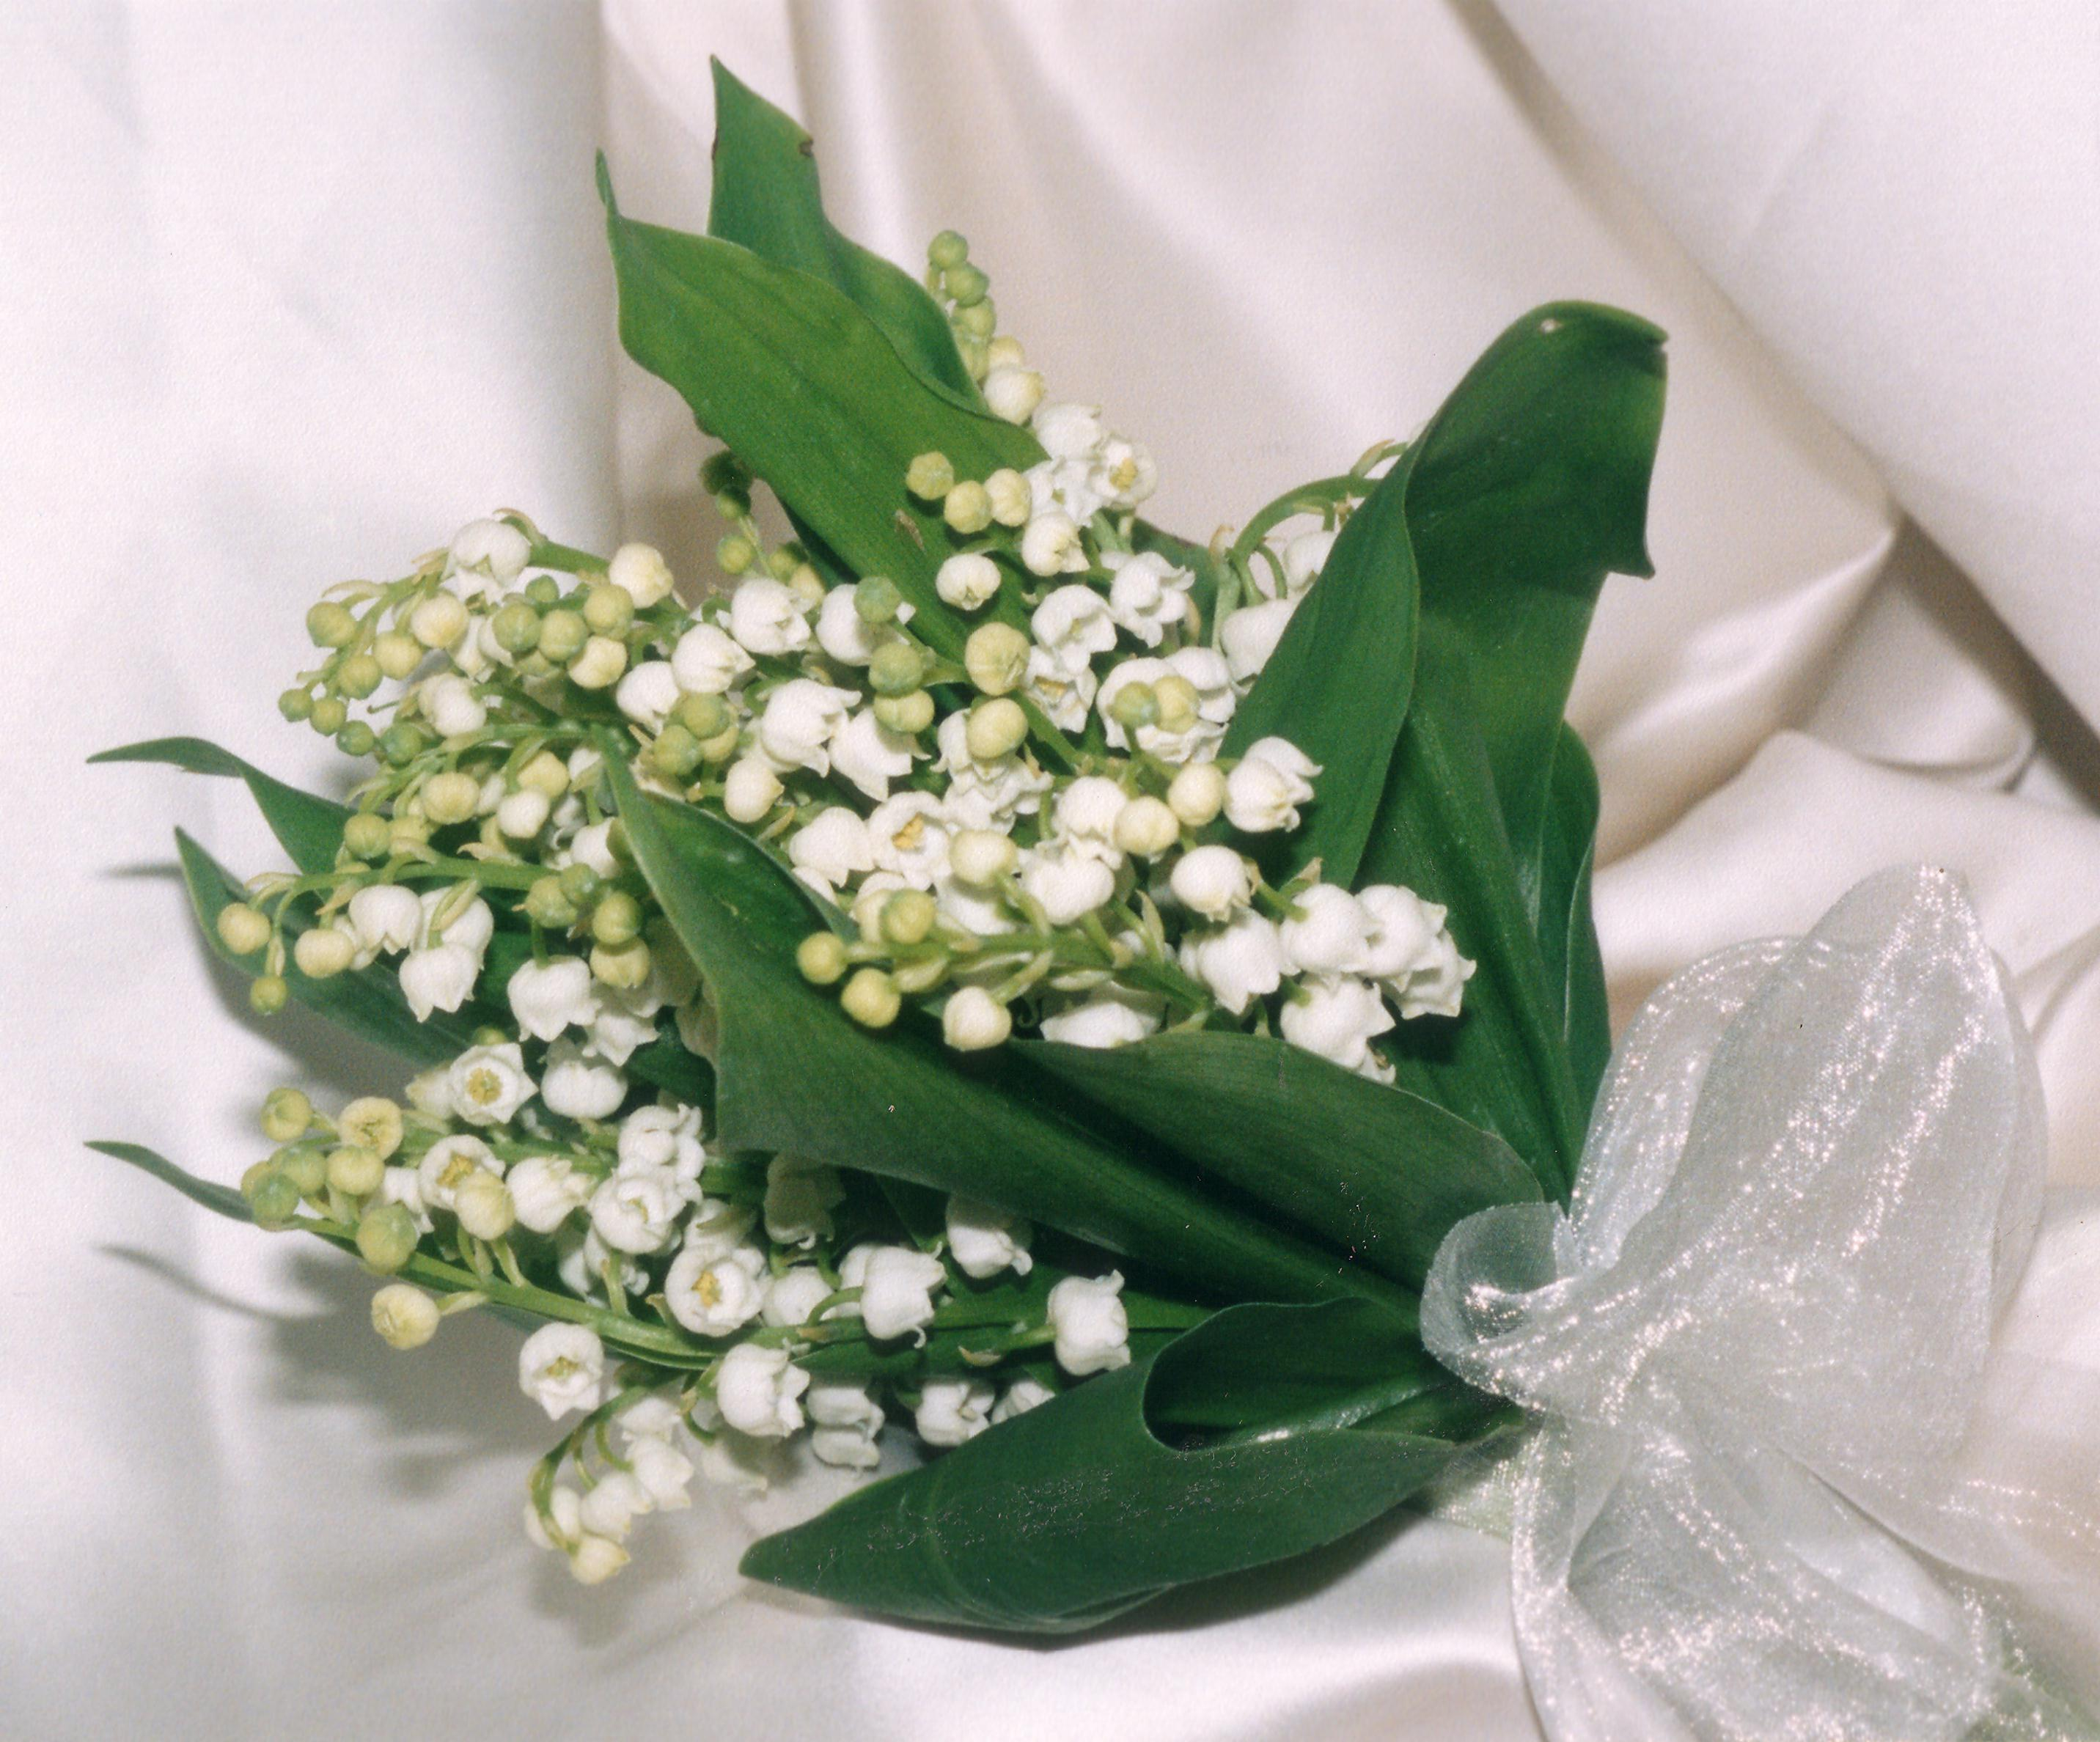 Feature Flowers This Week Are Lily Of The Valley, Freesia